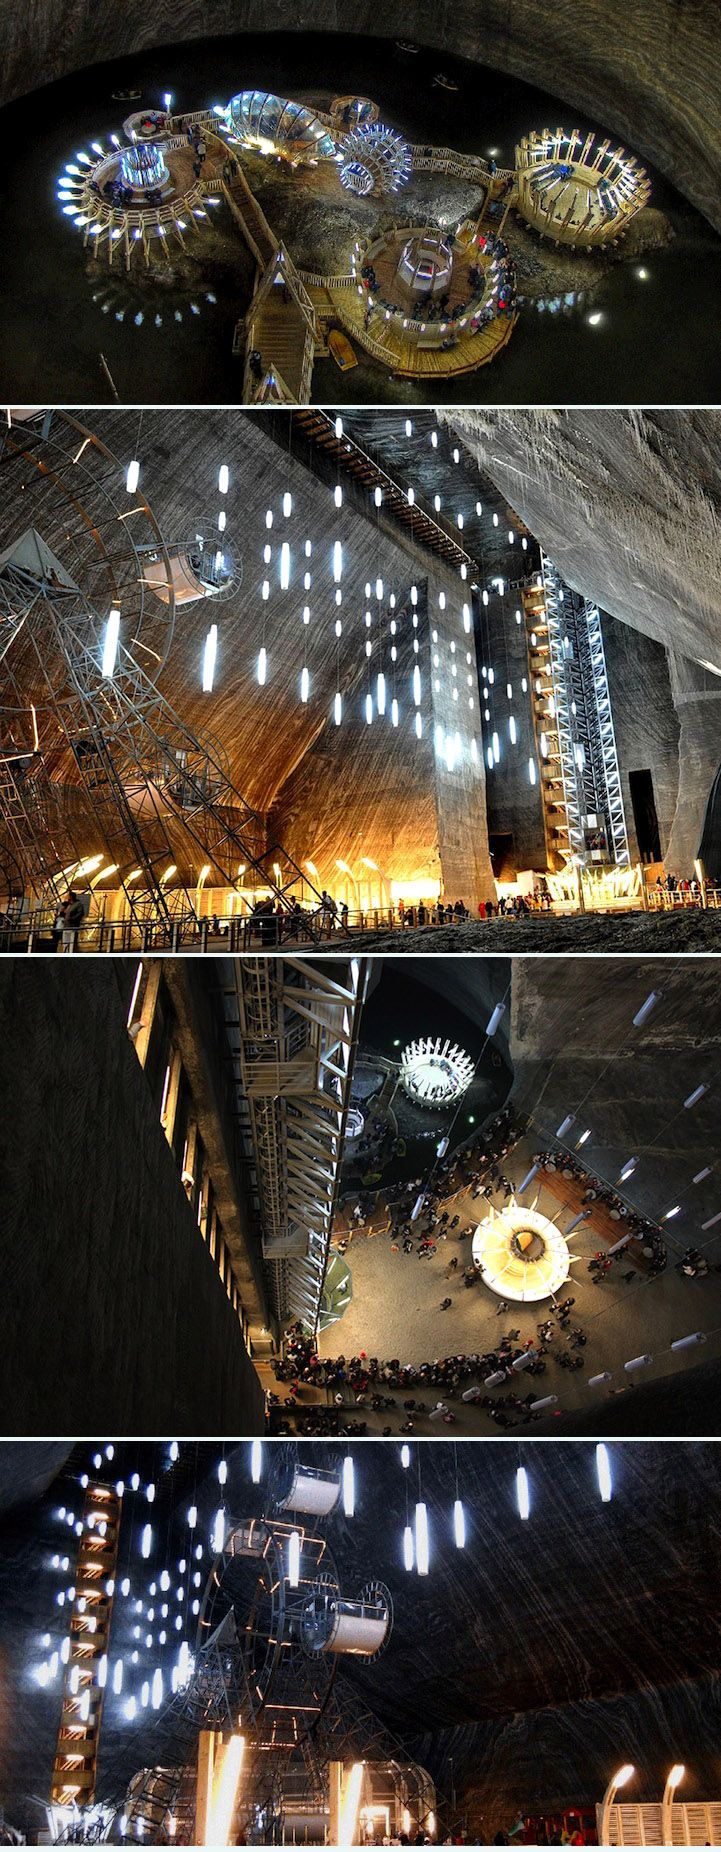 Old Romania Salt Mines Converted Into 370ft Deep MuseumJoyce Watkins King Art and Consulting